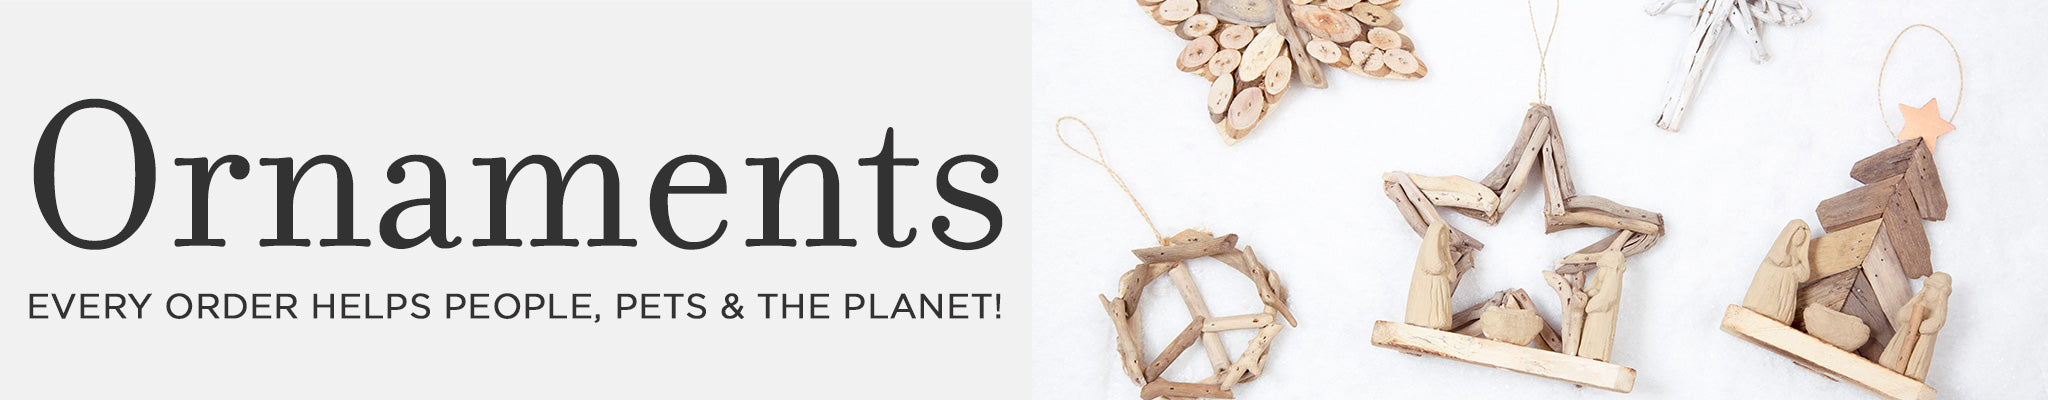 Ornaments | Every order helps people, pets & the planet!